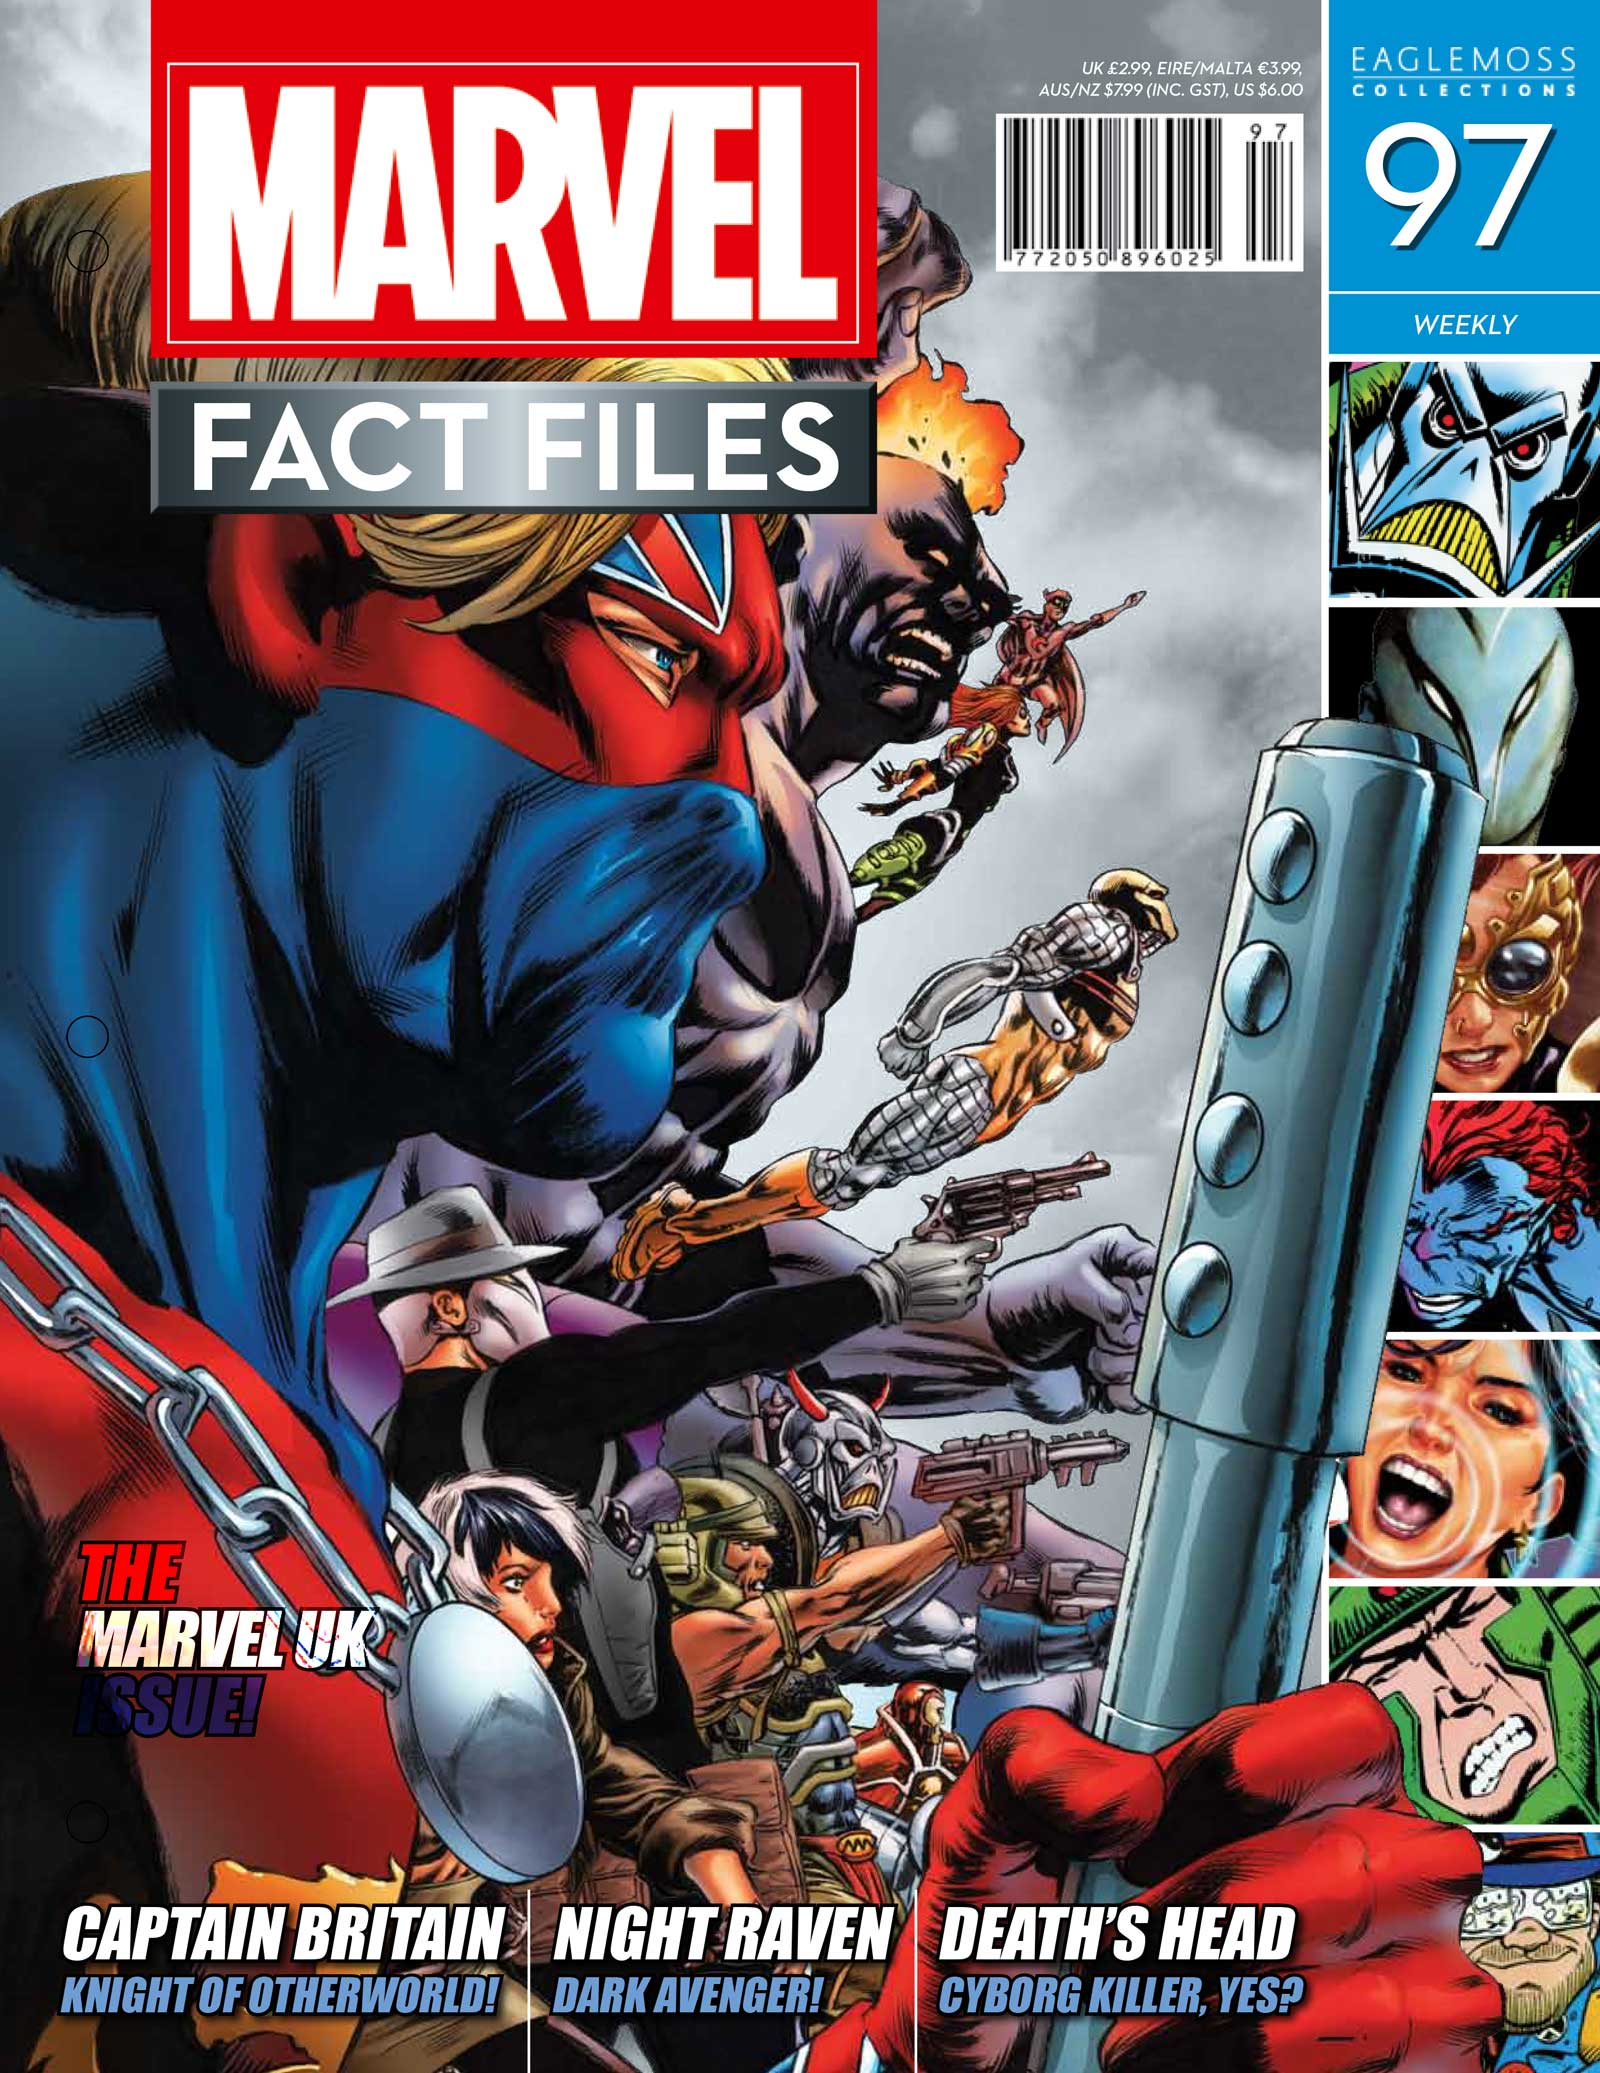 Marvel Fact Files 97 Cover